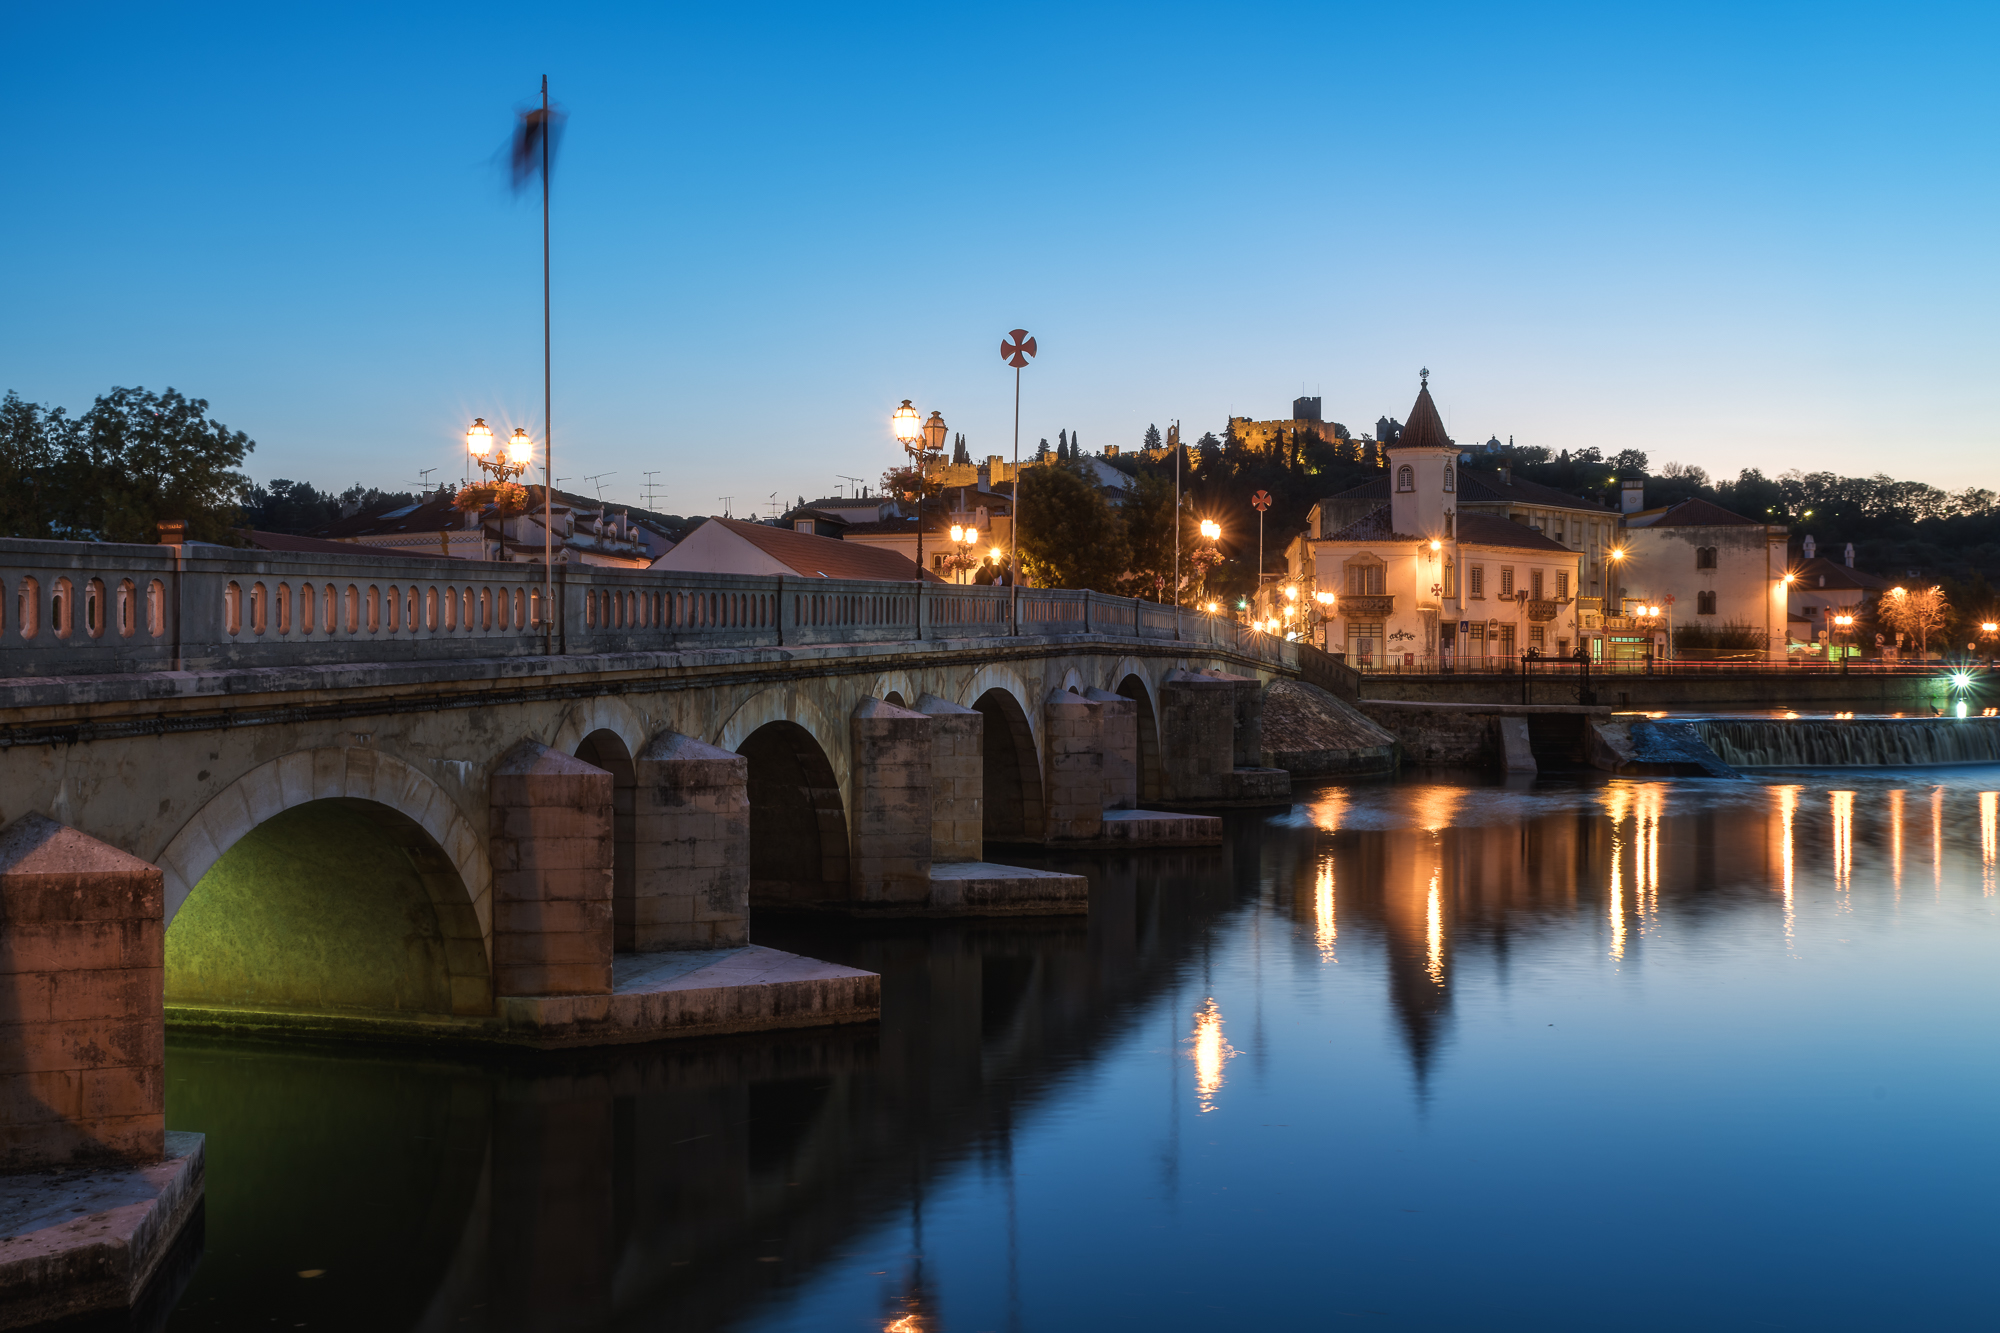 Portugal, Tomar, Stadt, City, Cityscape, Blaue Stunde, Blue Hour, Nachtaufnahme, Nightshot, Reflection, Reflexion, Spiegelung, Lights, Lichter, City Lights, Reise, Travel, Natur, Nature, Landschaft, Landscape, Europa, Europe, Nikon, Nikon D850, Manfrotto,